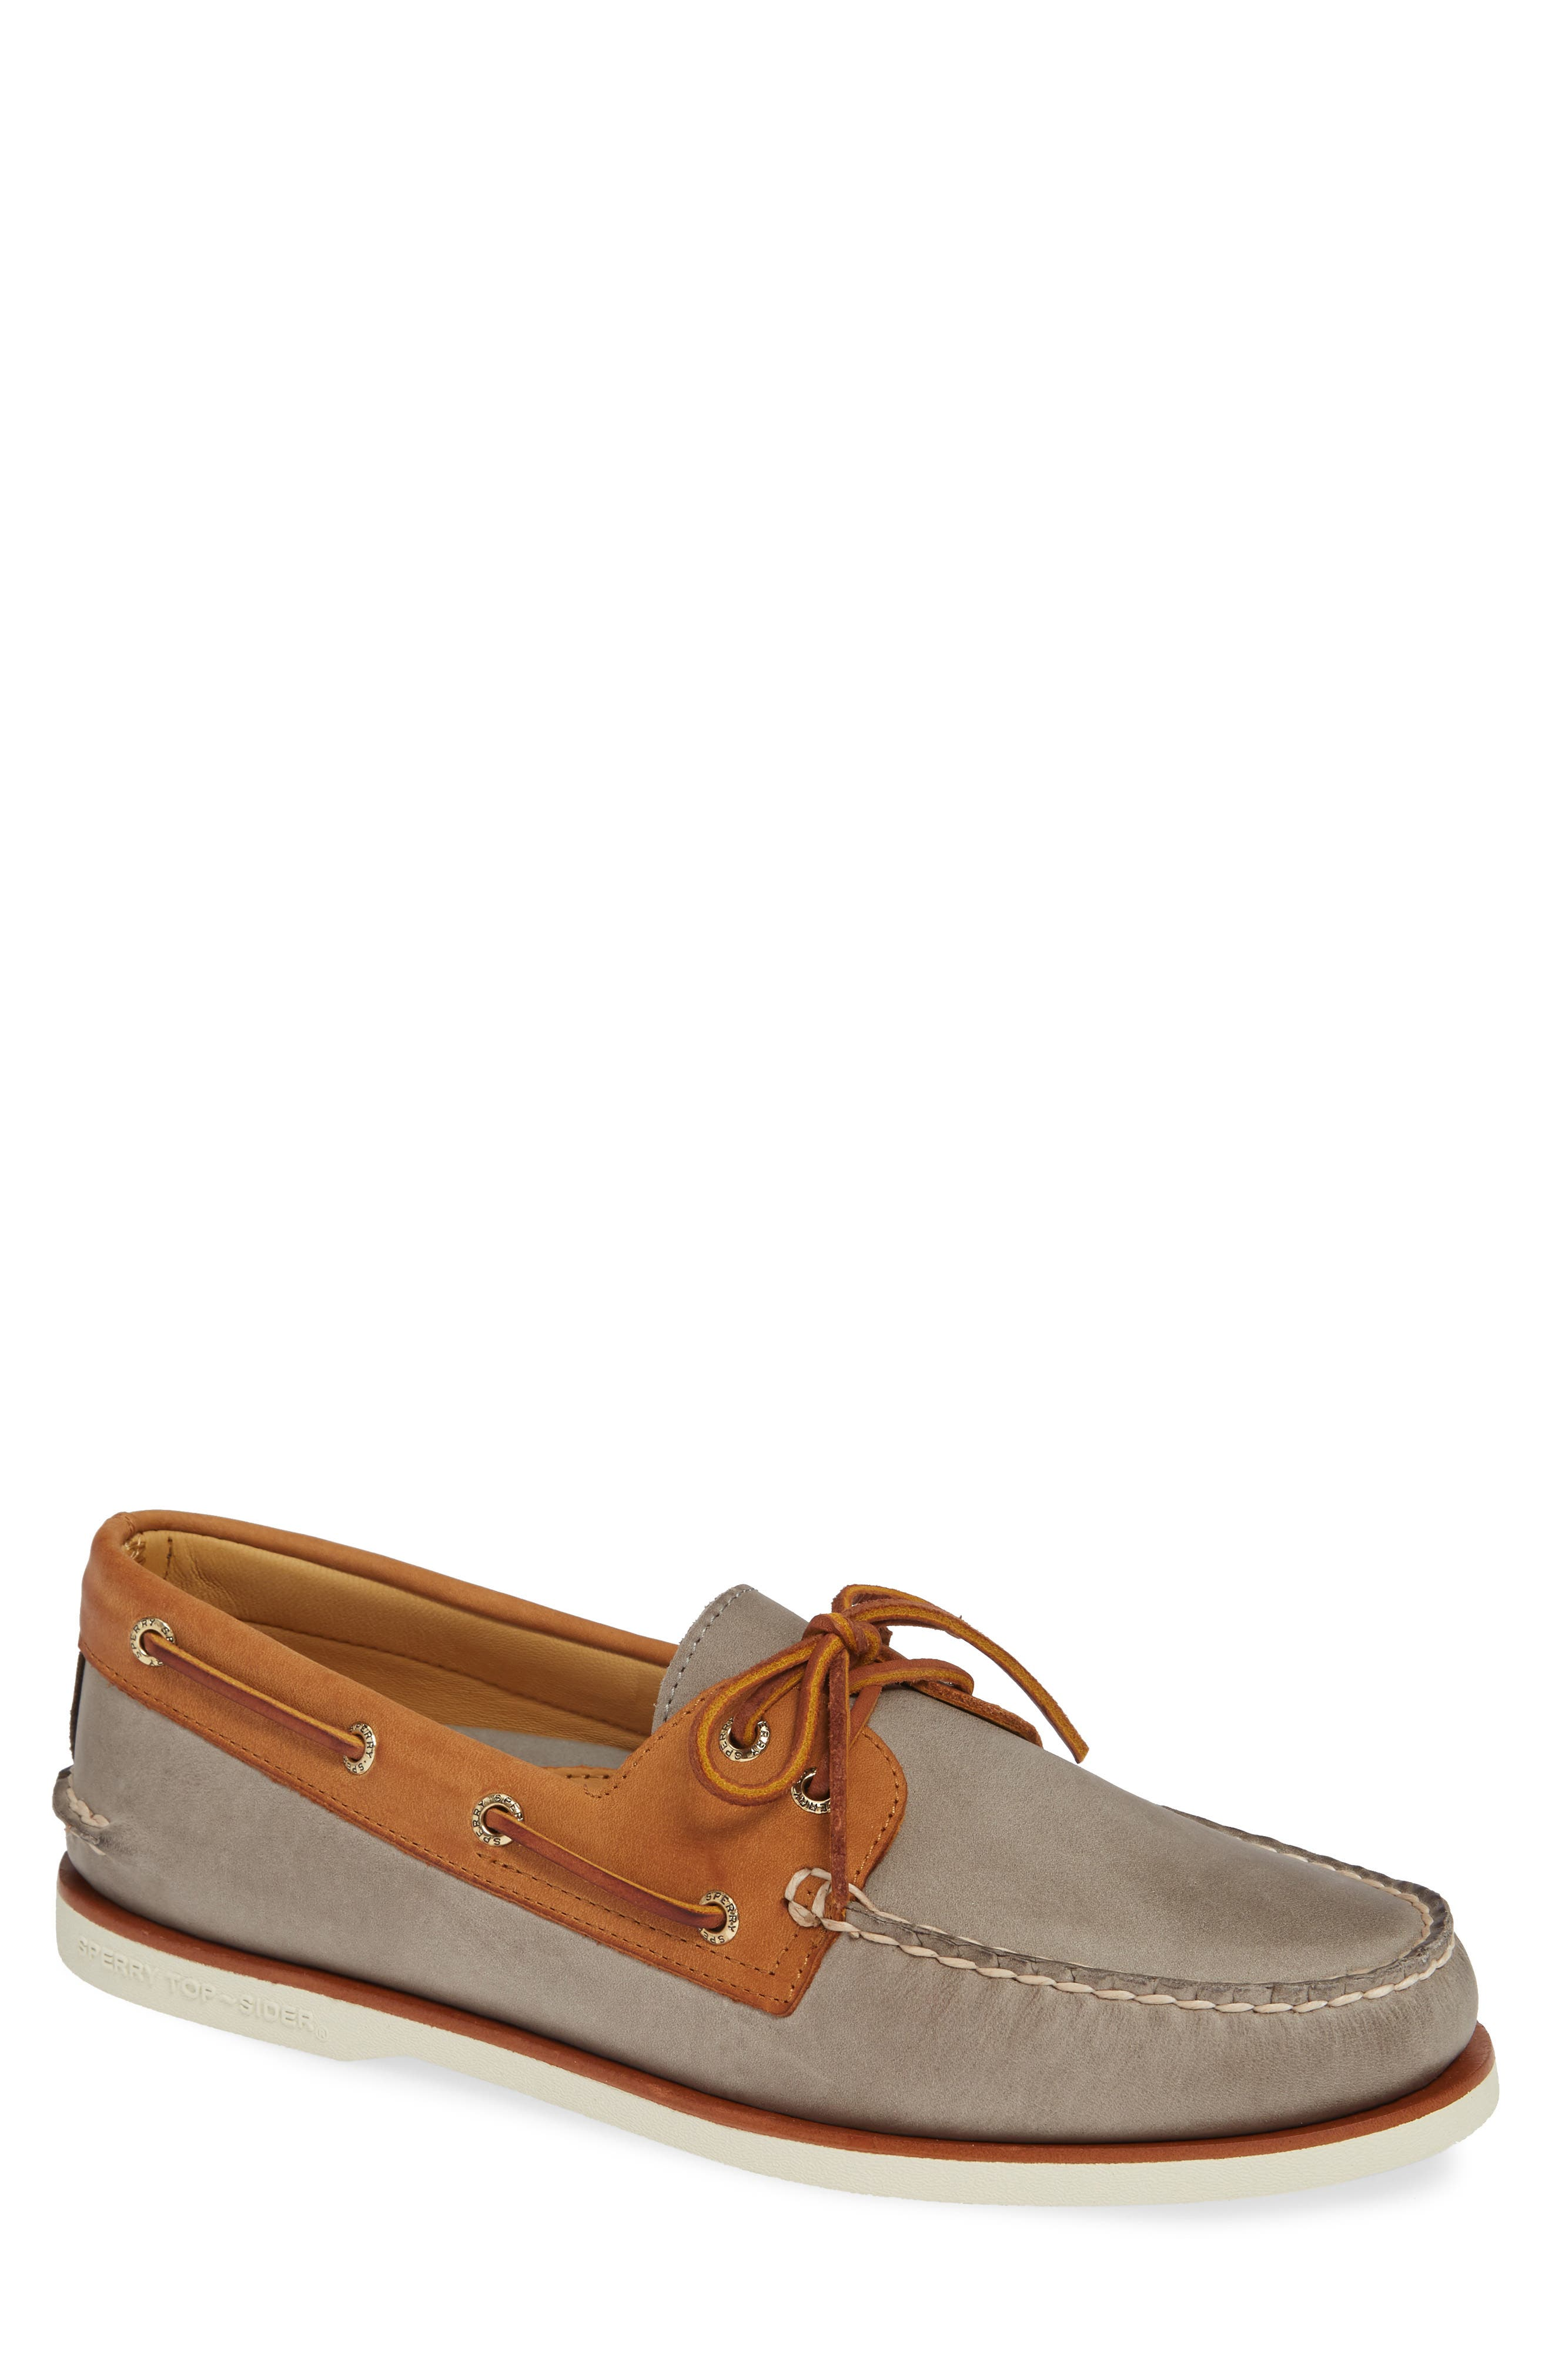 SPERRY, Gold Cup AO Boat Shoe, Main thumbnail 1, color, 020